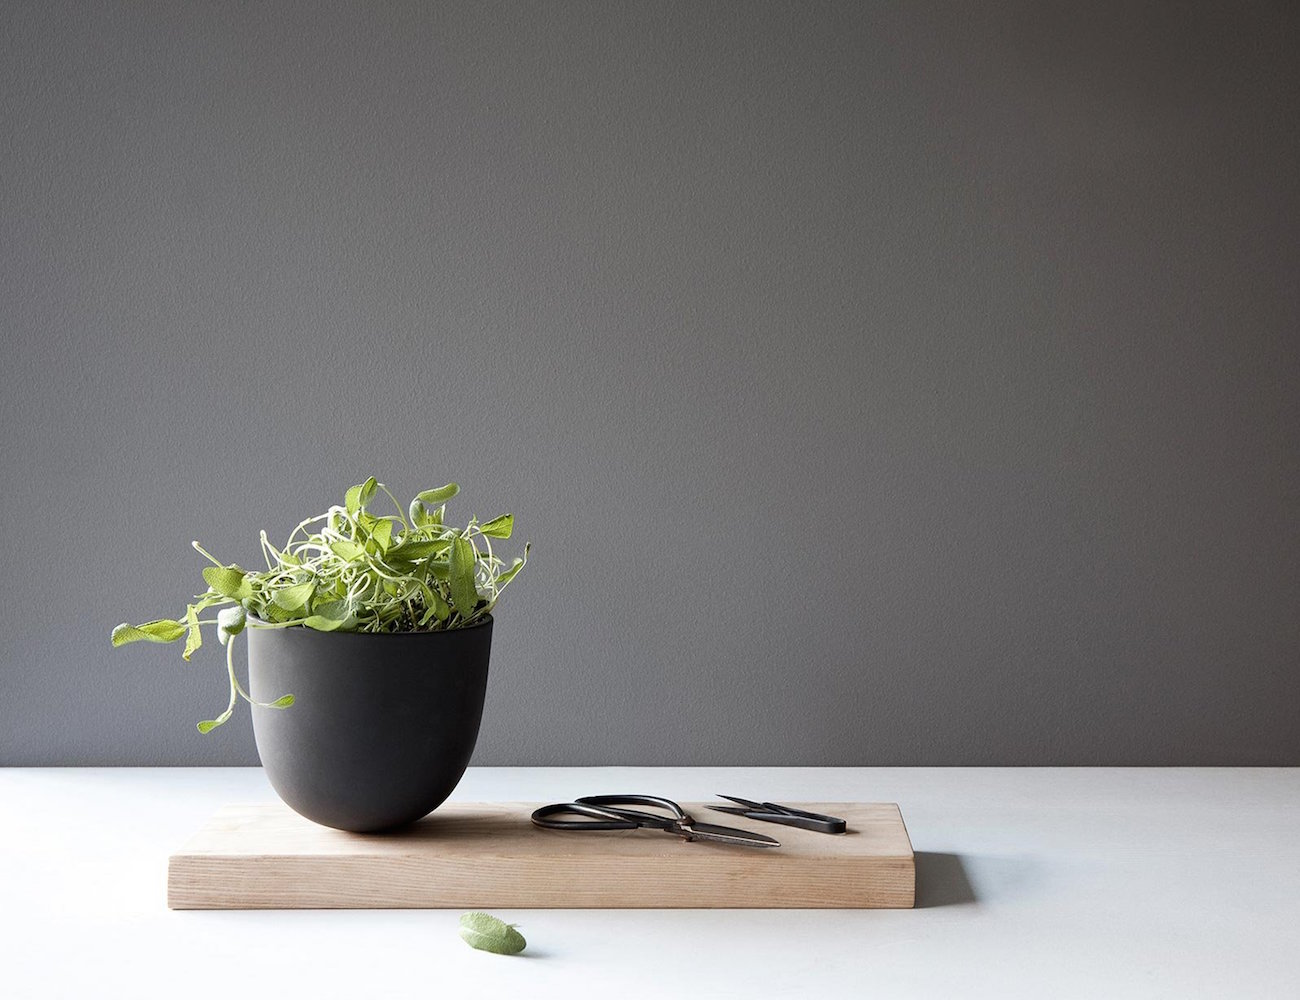 Grow Pot & Cutting Board by Menu